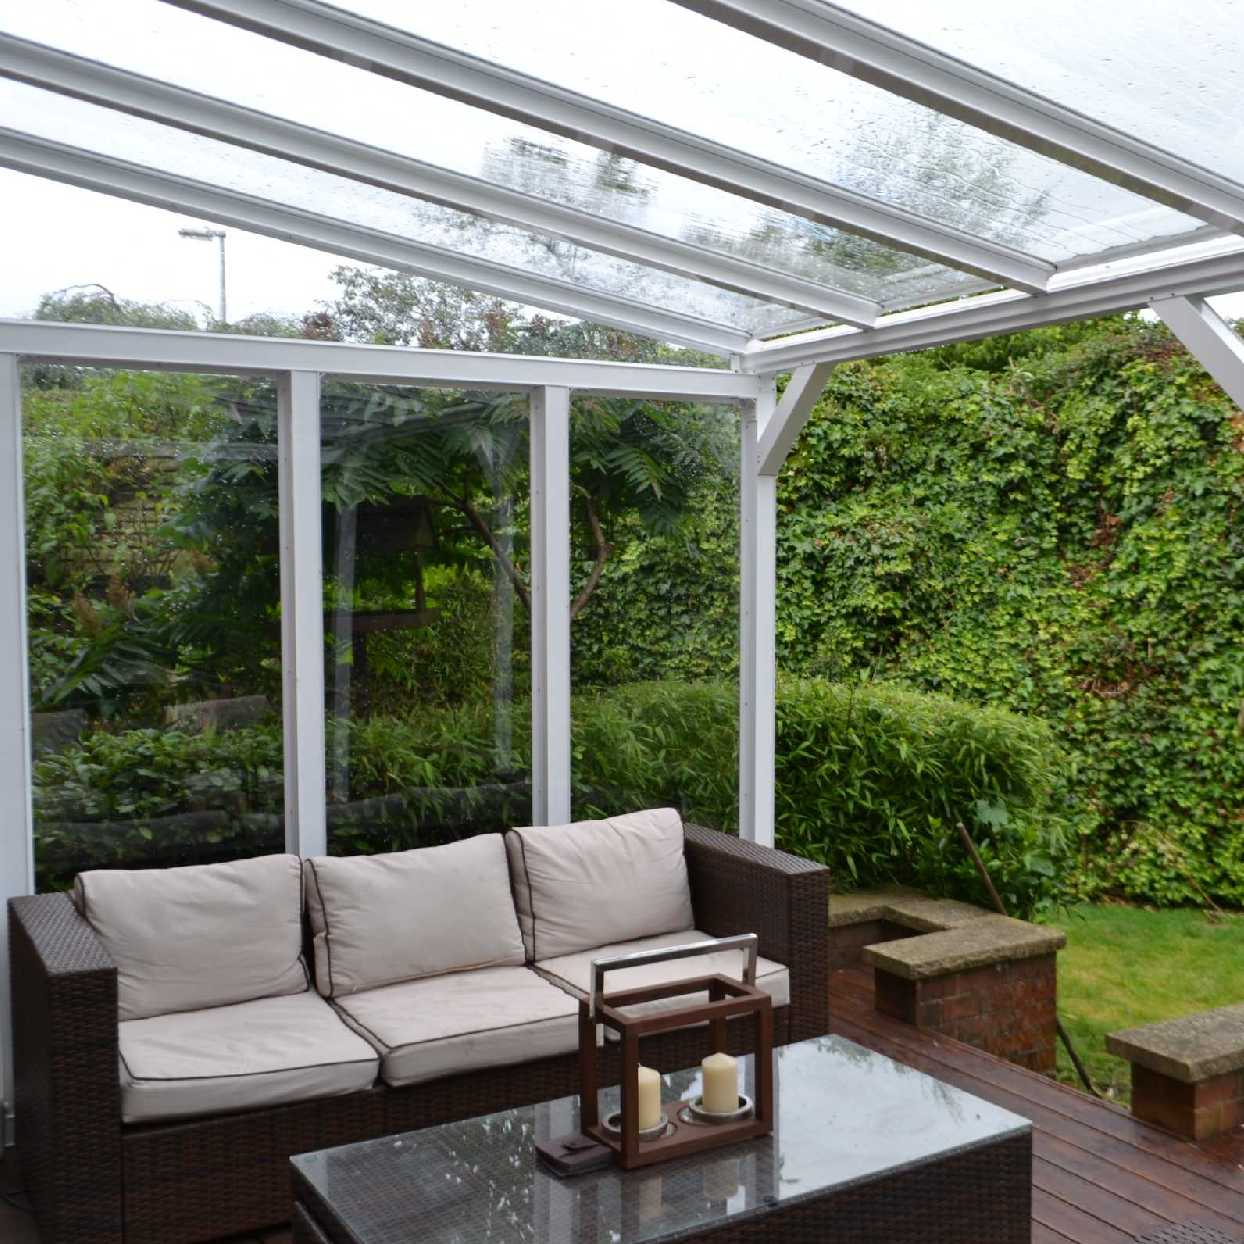 Omega Smart White Lean-To Canopy with 6mm Glass Clear Plate Polycarbonate Glazing - 7.7m (W) x 3.0m (P), (4) Supporting Posts